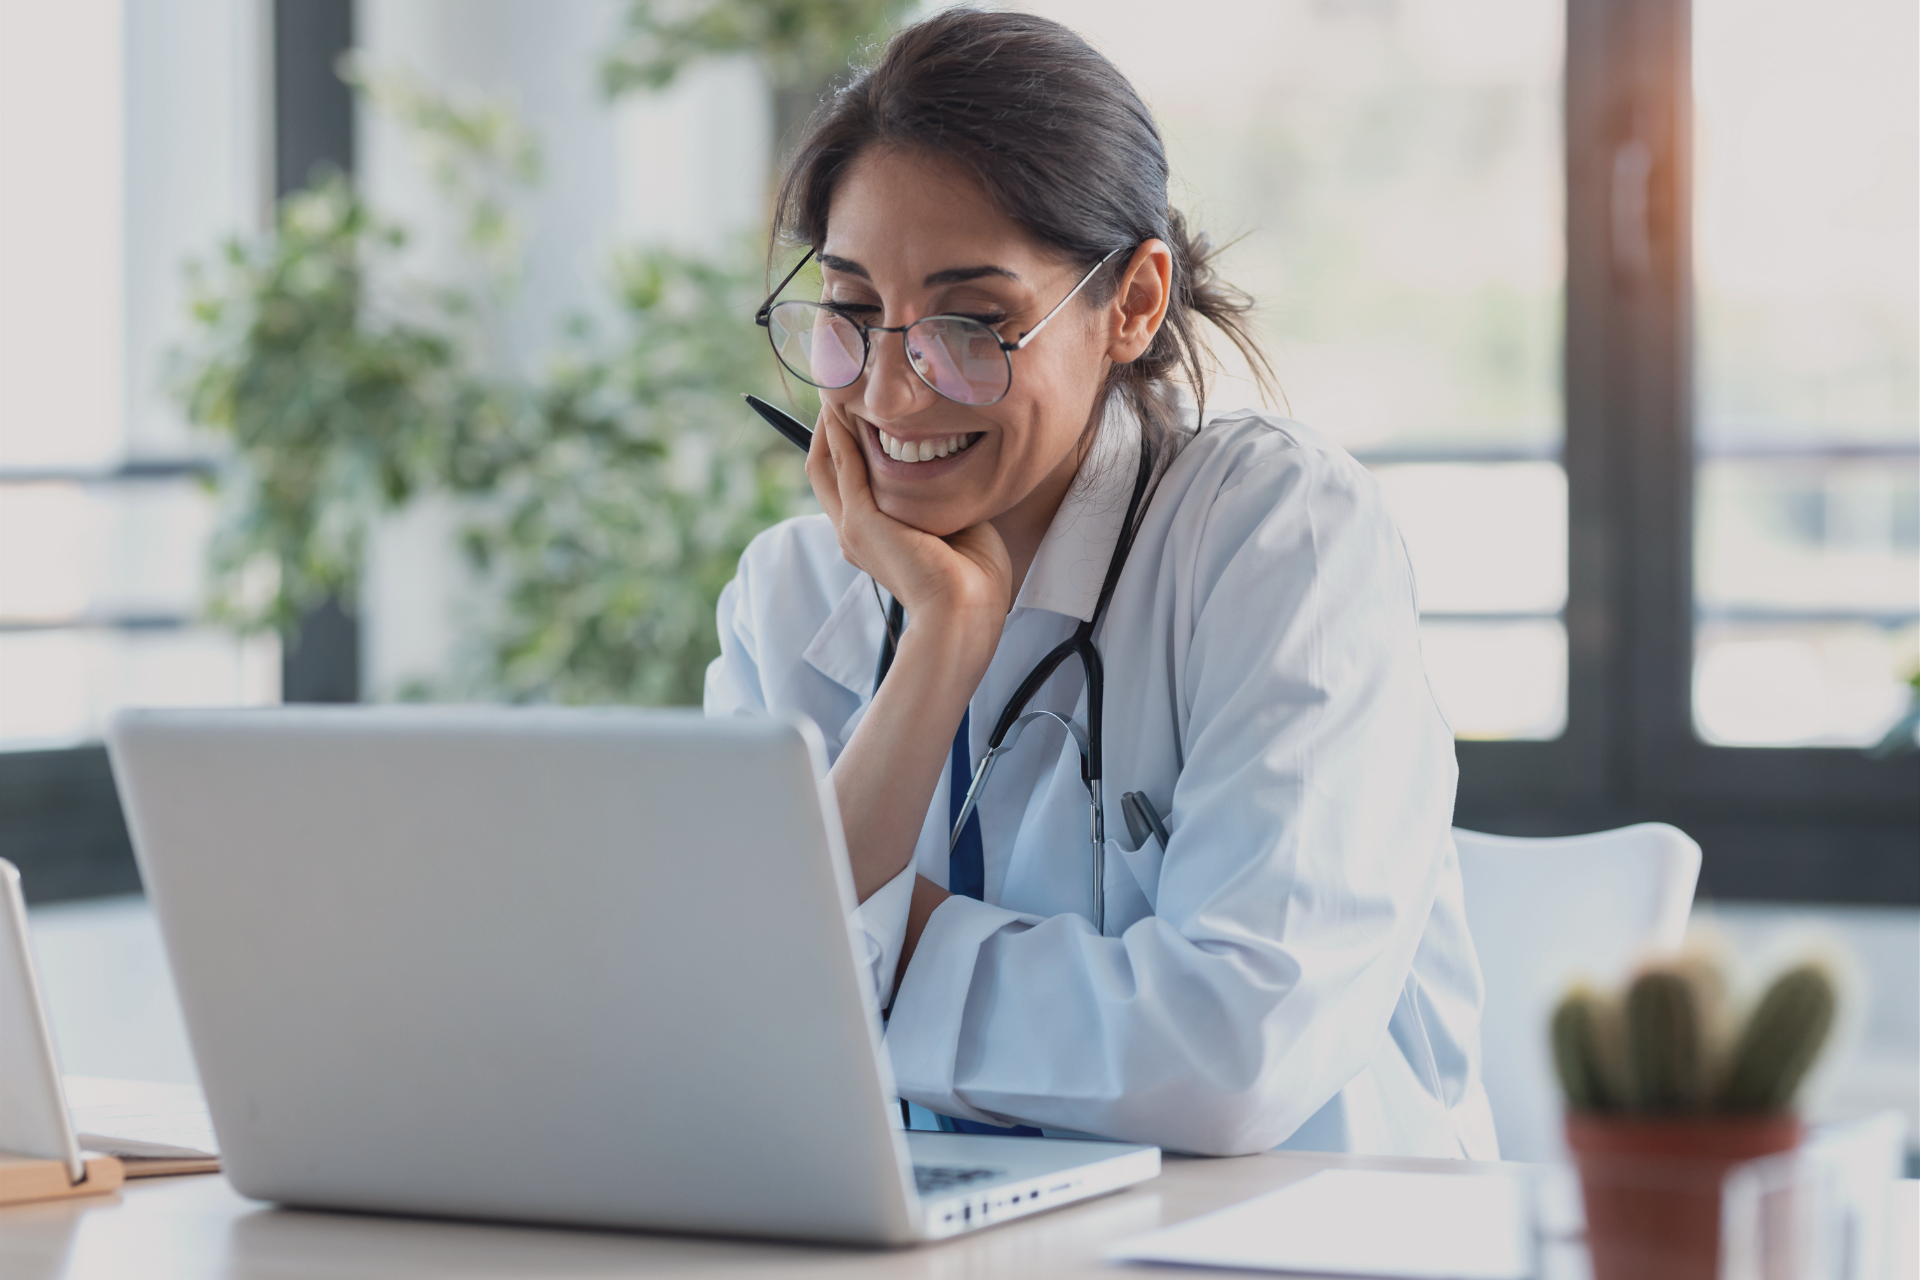 Doctor Smiling Looking at Laptop Screen in Office